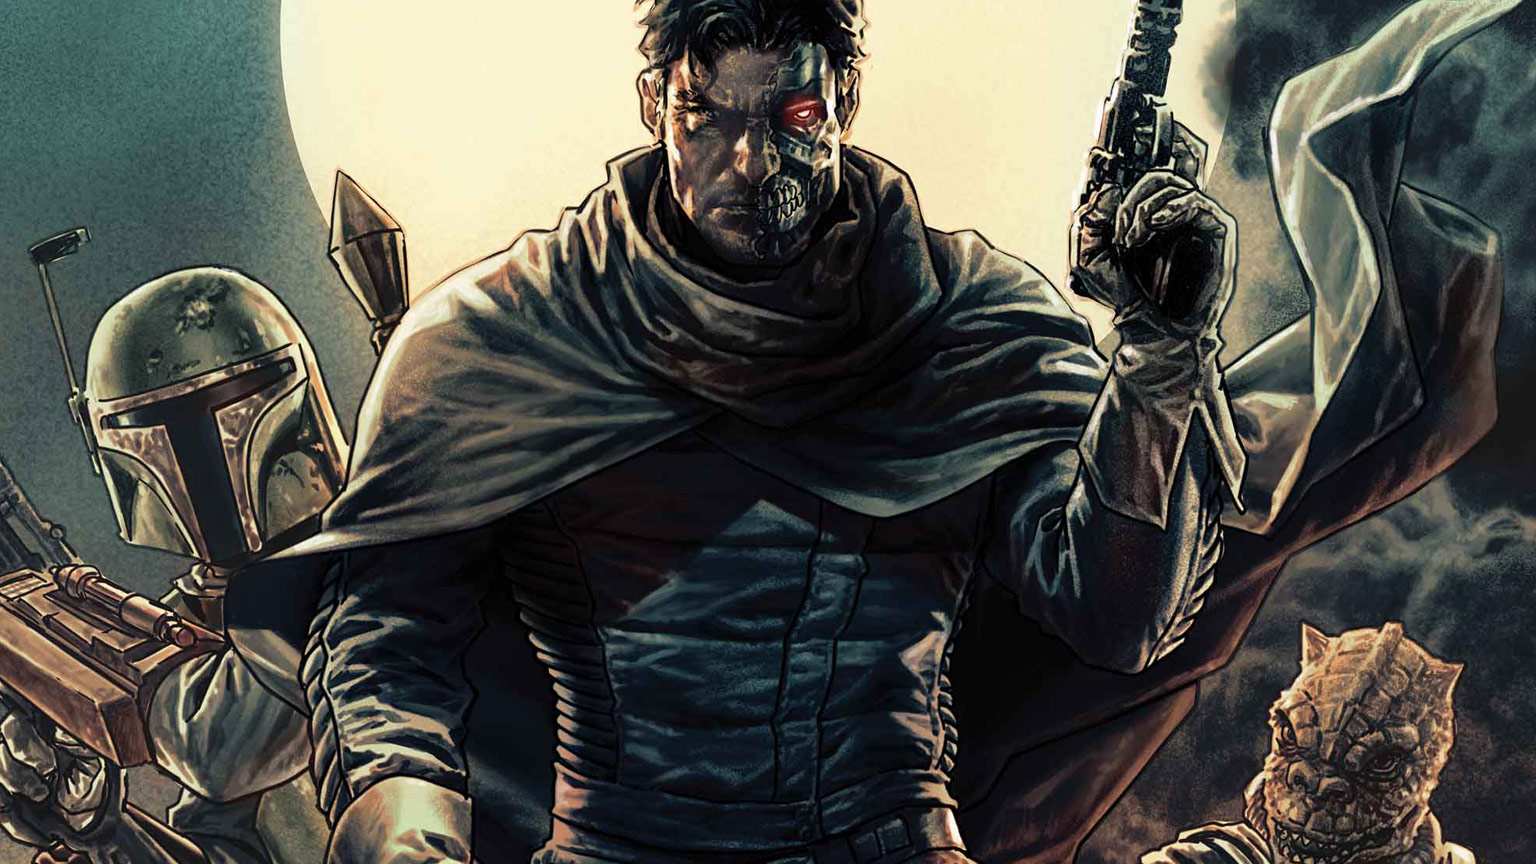 Star Wars announces new ongoing series, Bounty Hunters